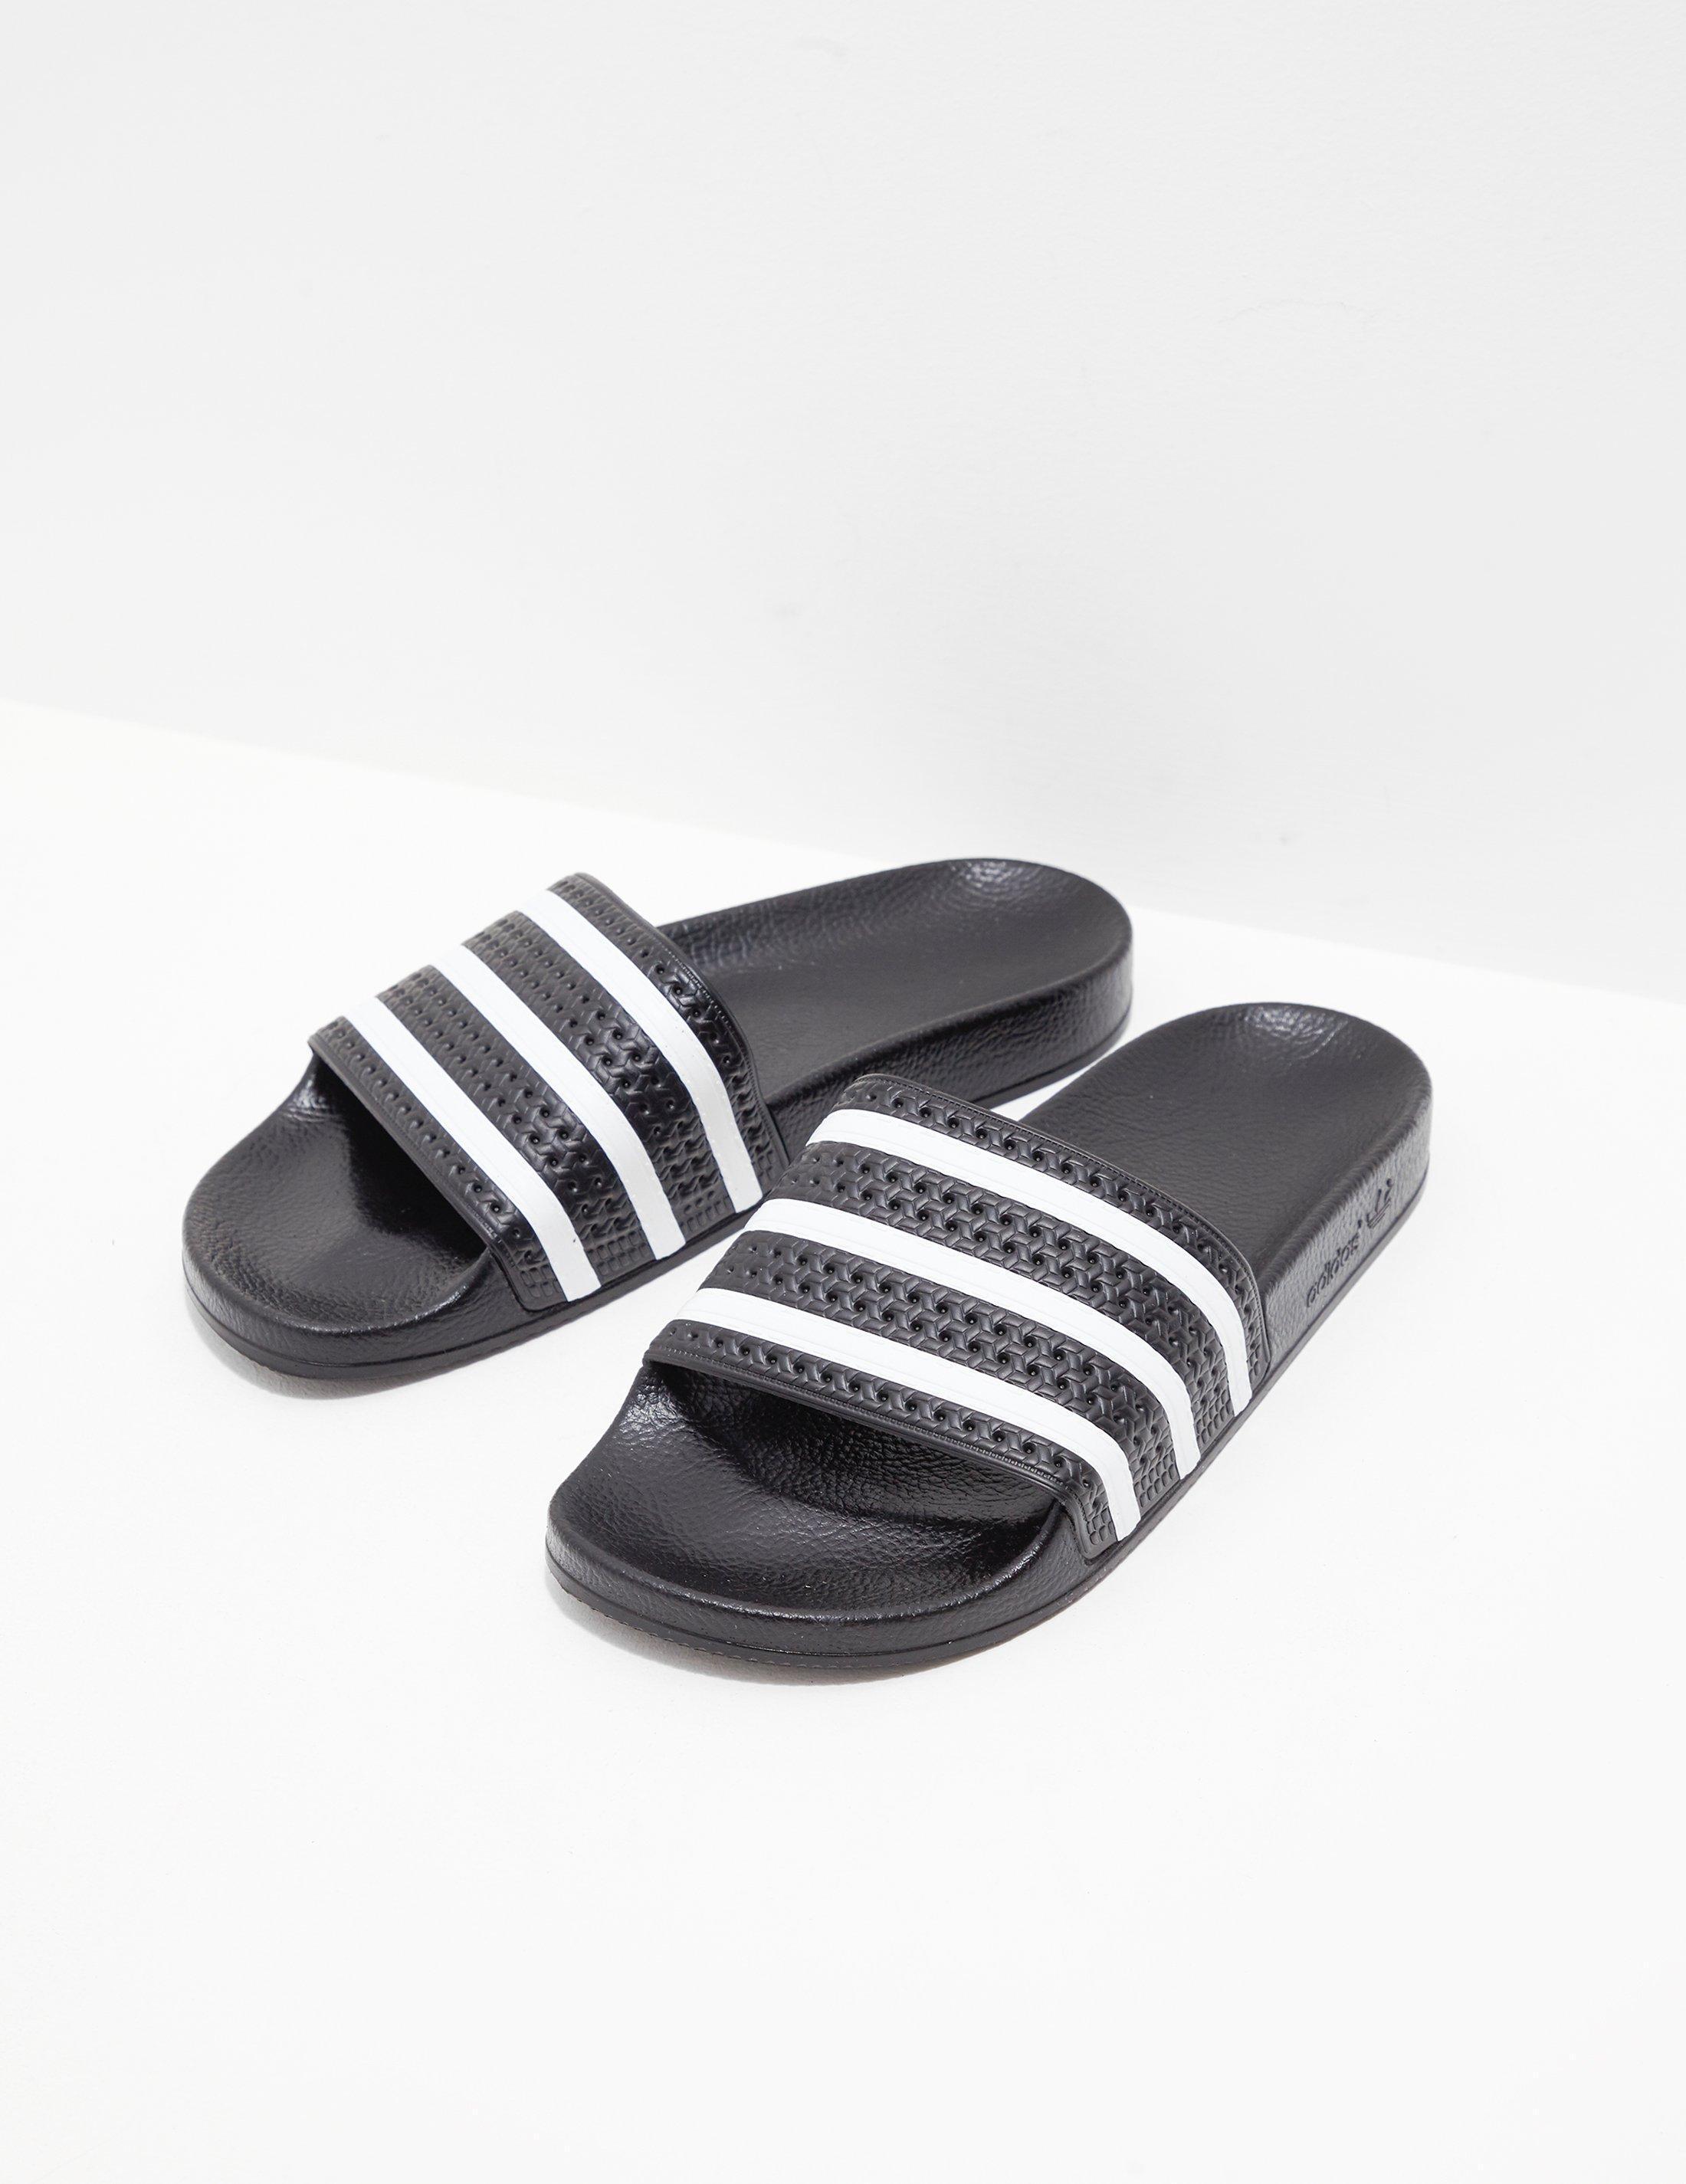 f2428dd3fbe0 Lyst - adidas Originals Adilette Slides Black in Black for Men